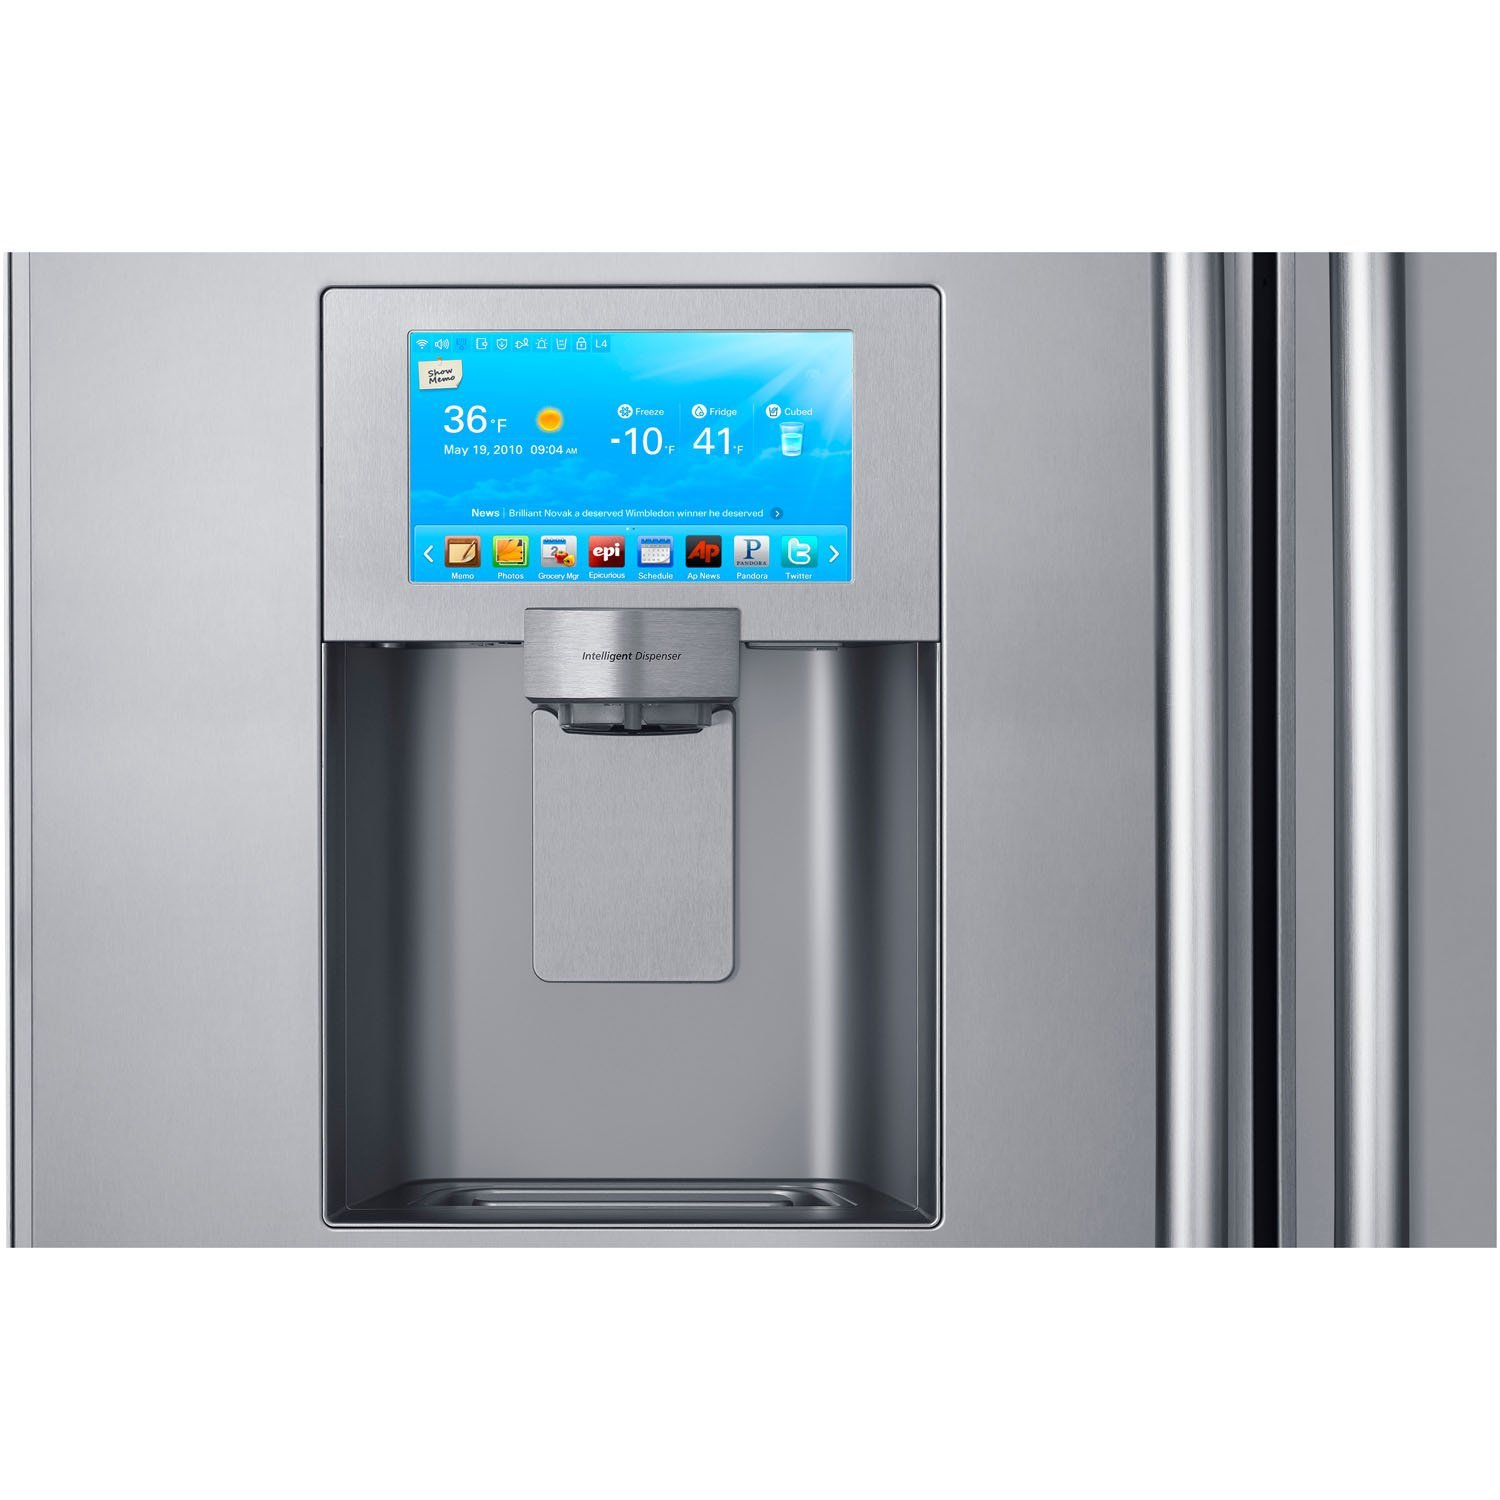 samsung refrigerator touch screen. amazon.com: samsung rs27fdbtnsr built-in side by refrigerator, 48-inch, stainless steel: appliances samsung refrigerator touch screen n